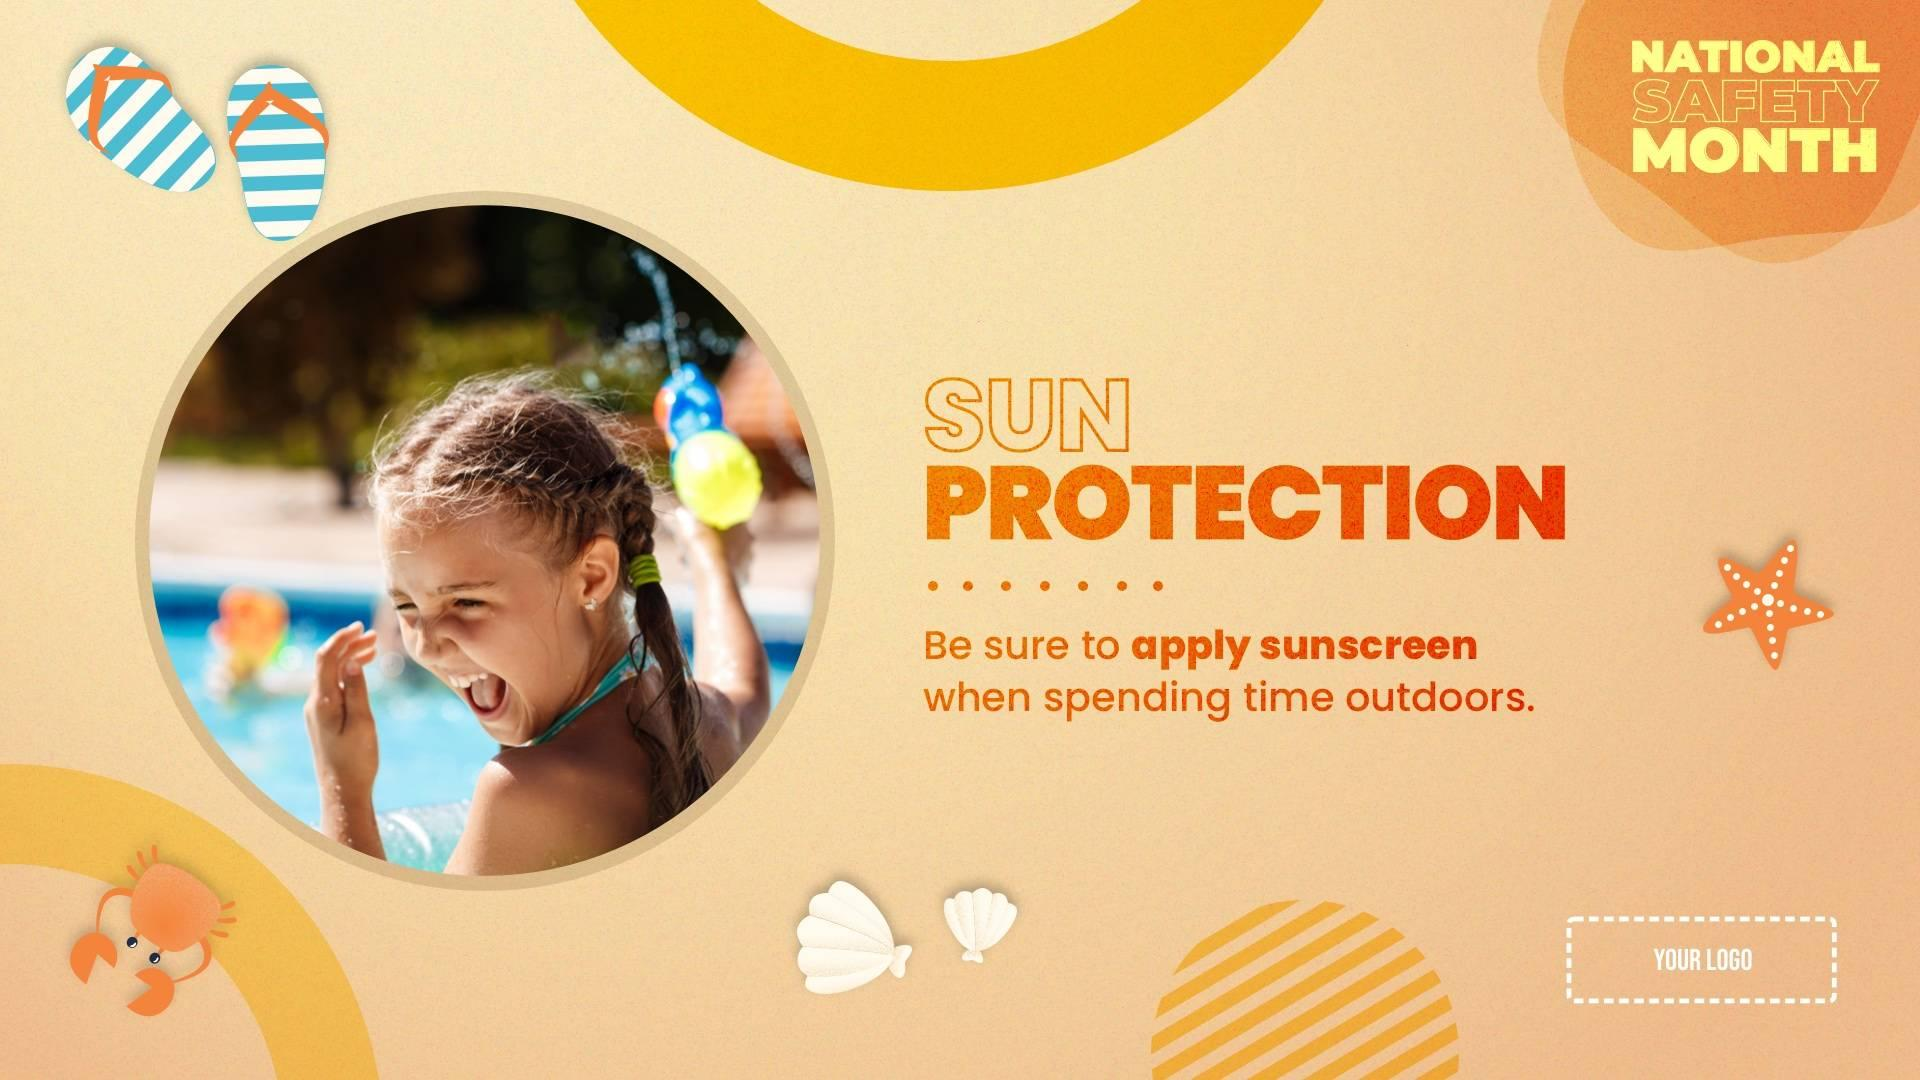 Sun Protection - National Safety Month Digital Signage Template